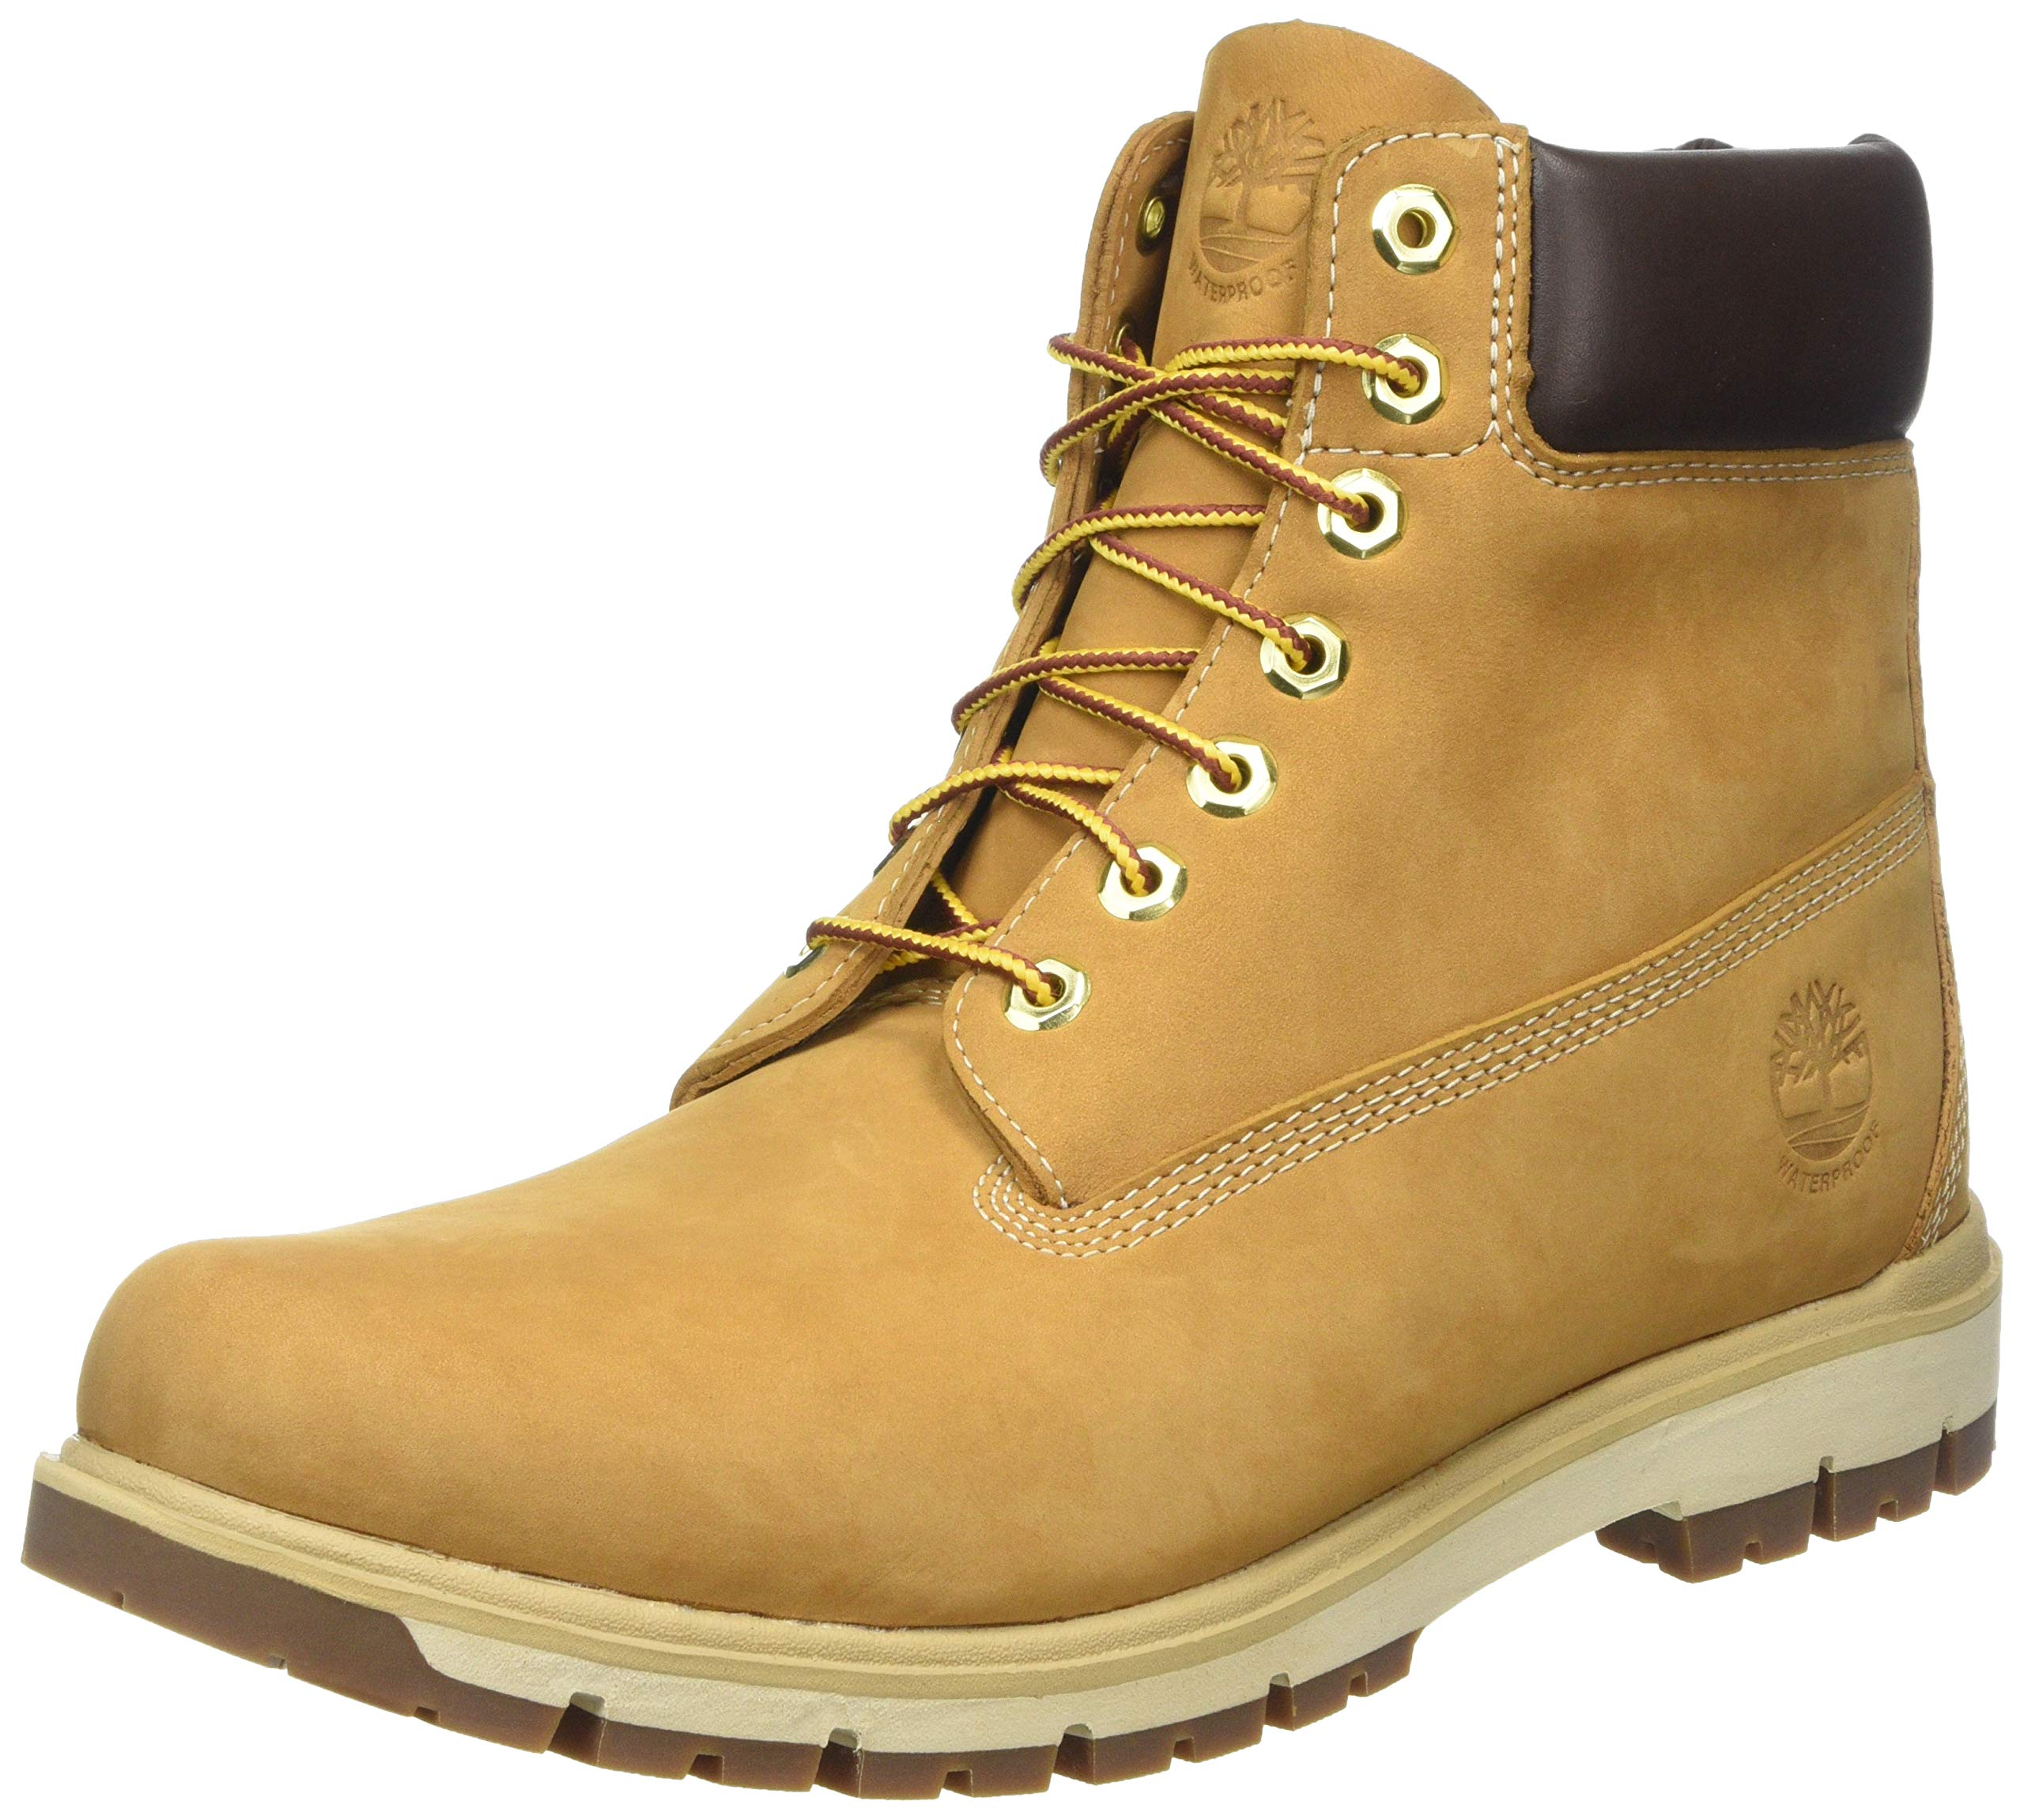 4f82f2901a5 Timberland Radford 6-inch Waterproof Bottes   Bottines Classiques Homme